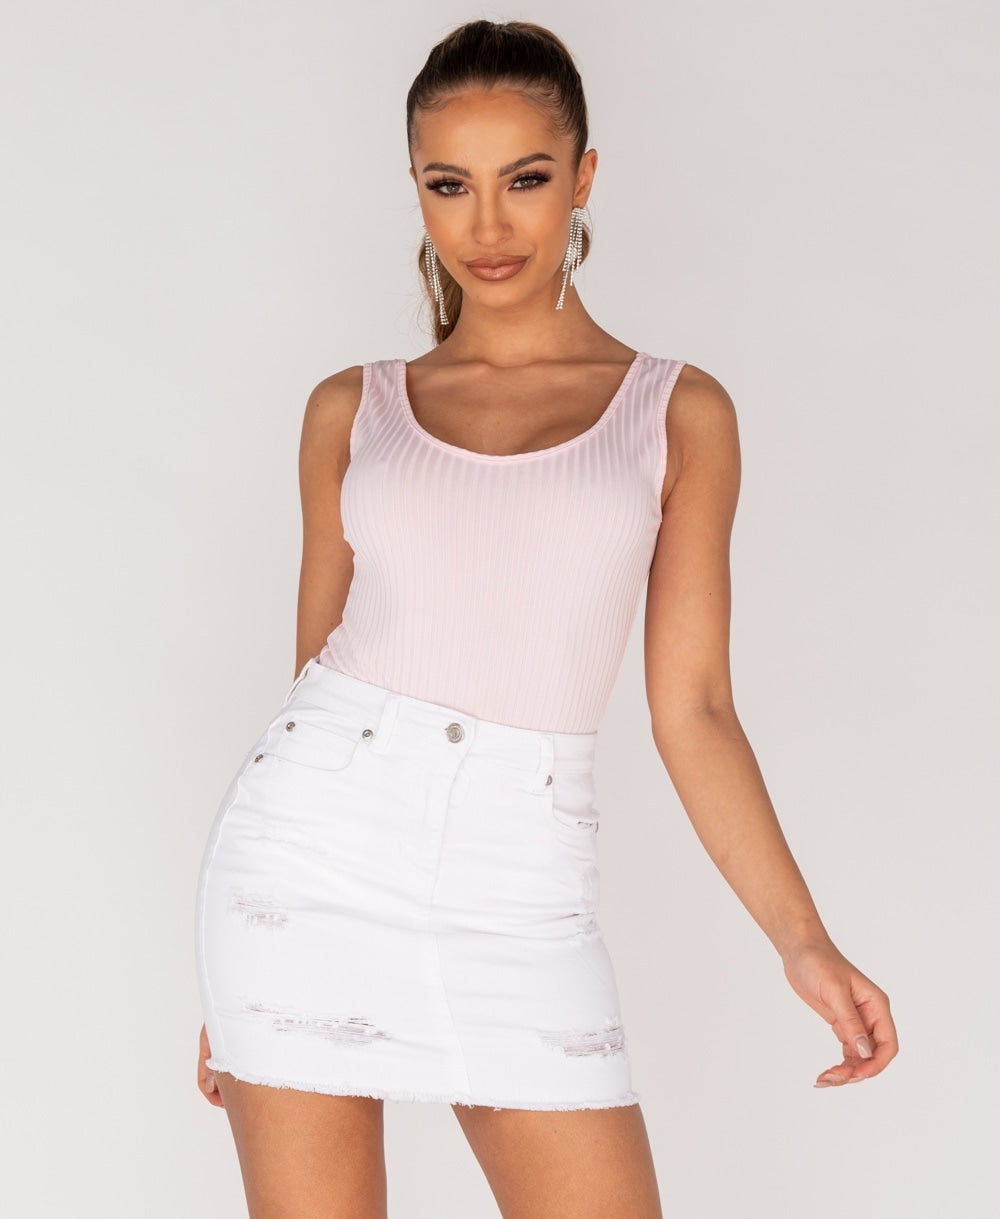 Best seller!!! White Distressed Frayed Hem Denim Mini Skirt